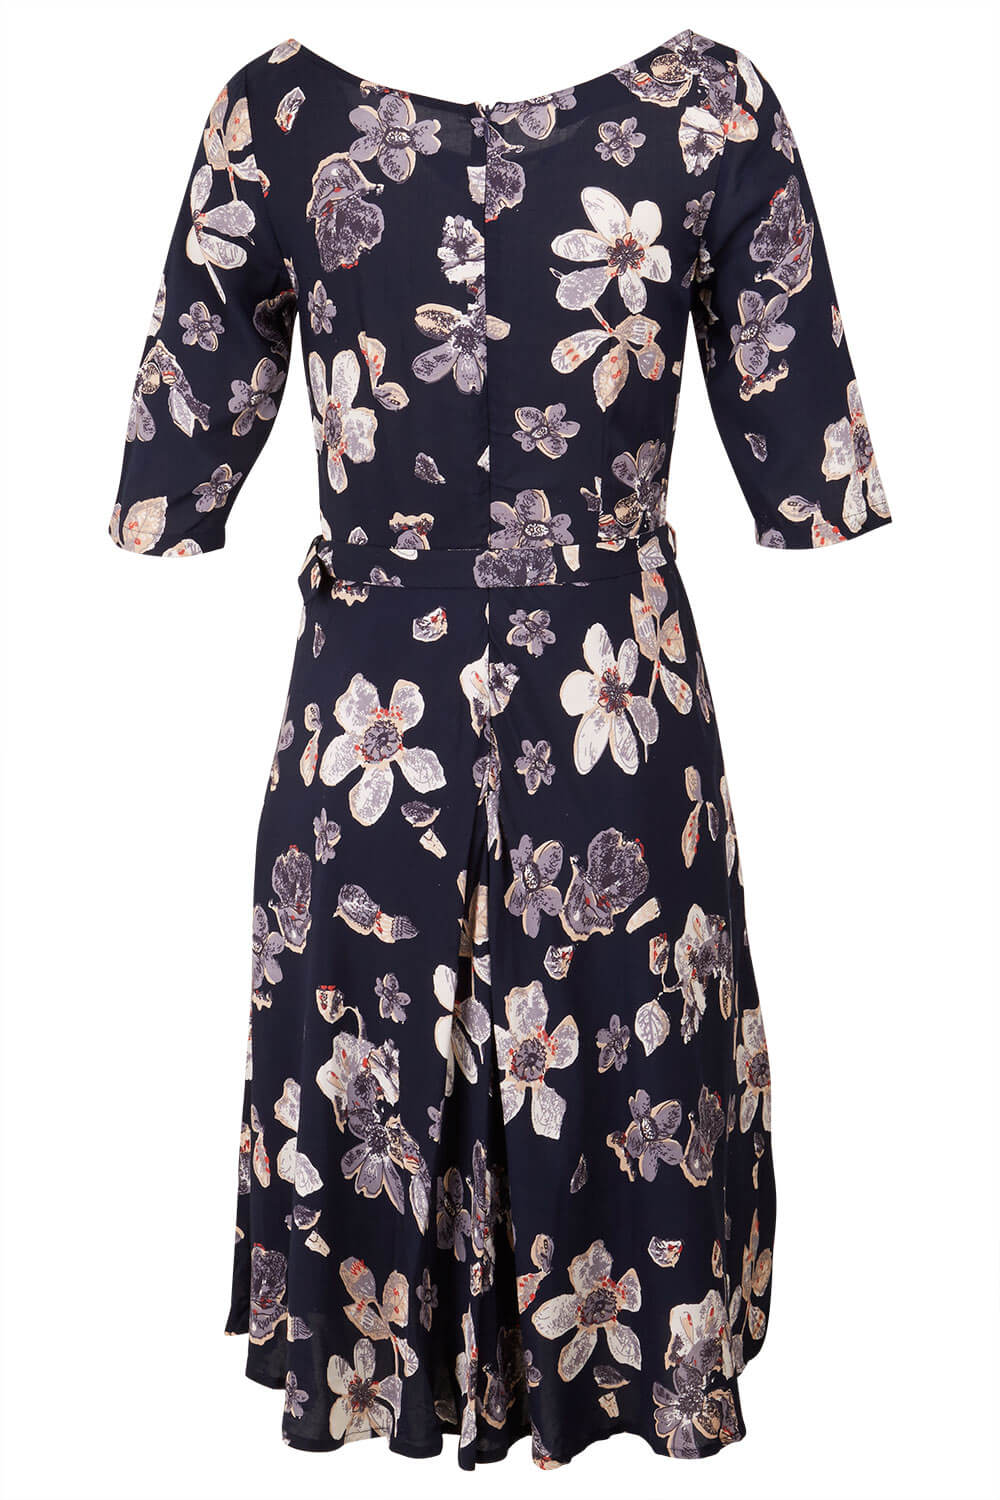 Womens Neck Tie Floral Dress